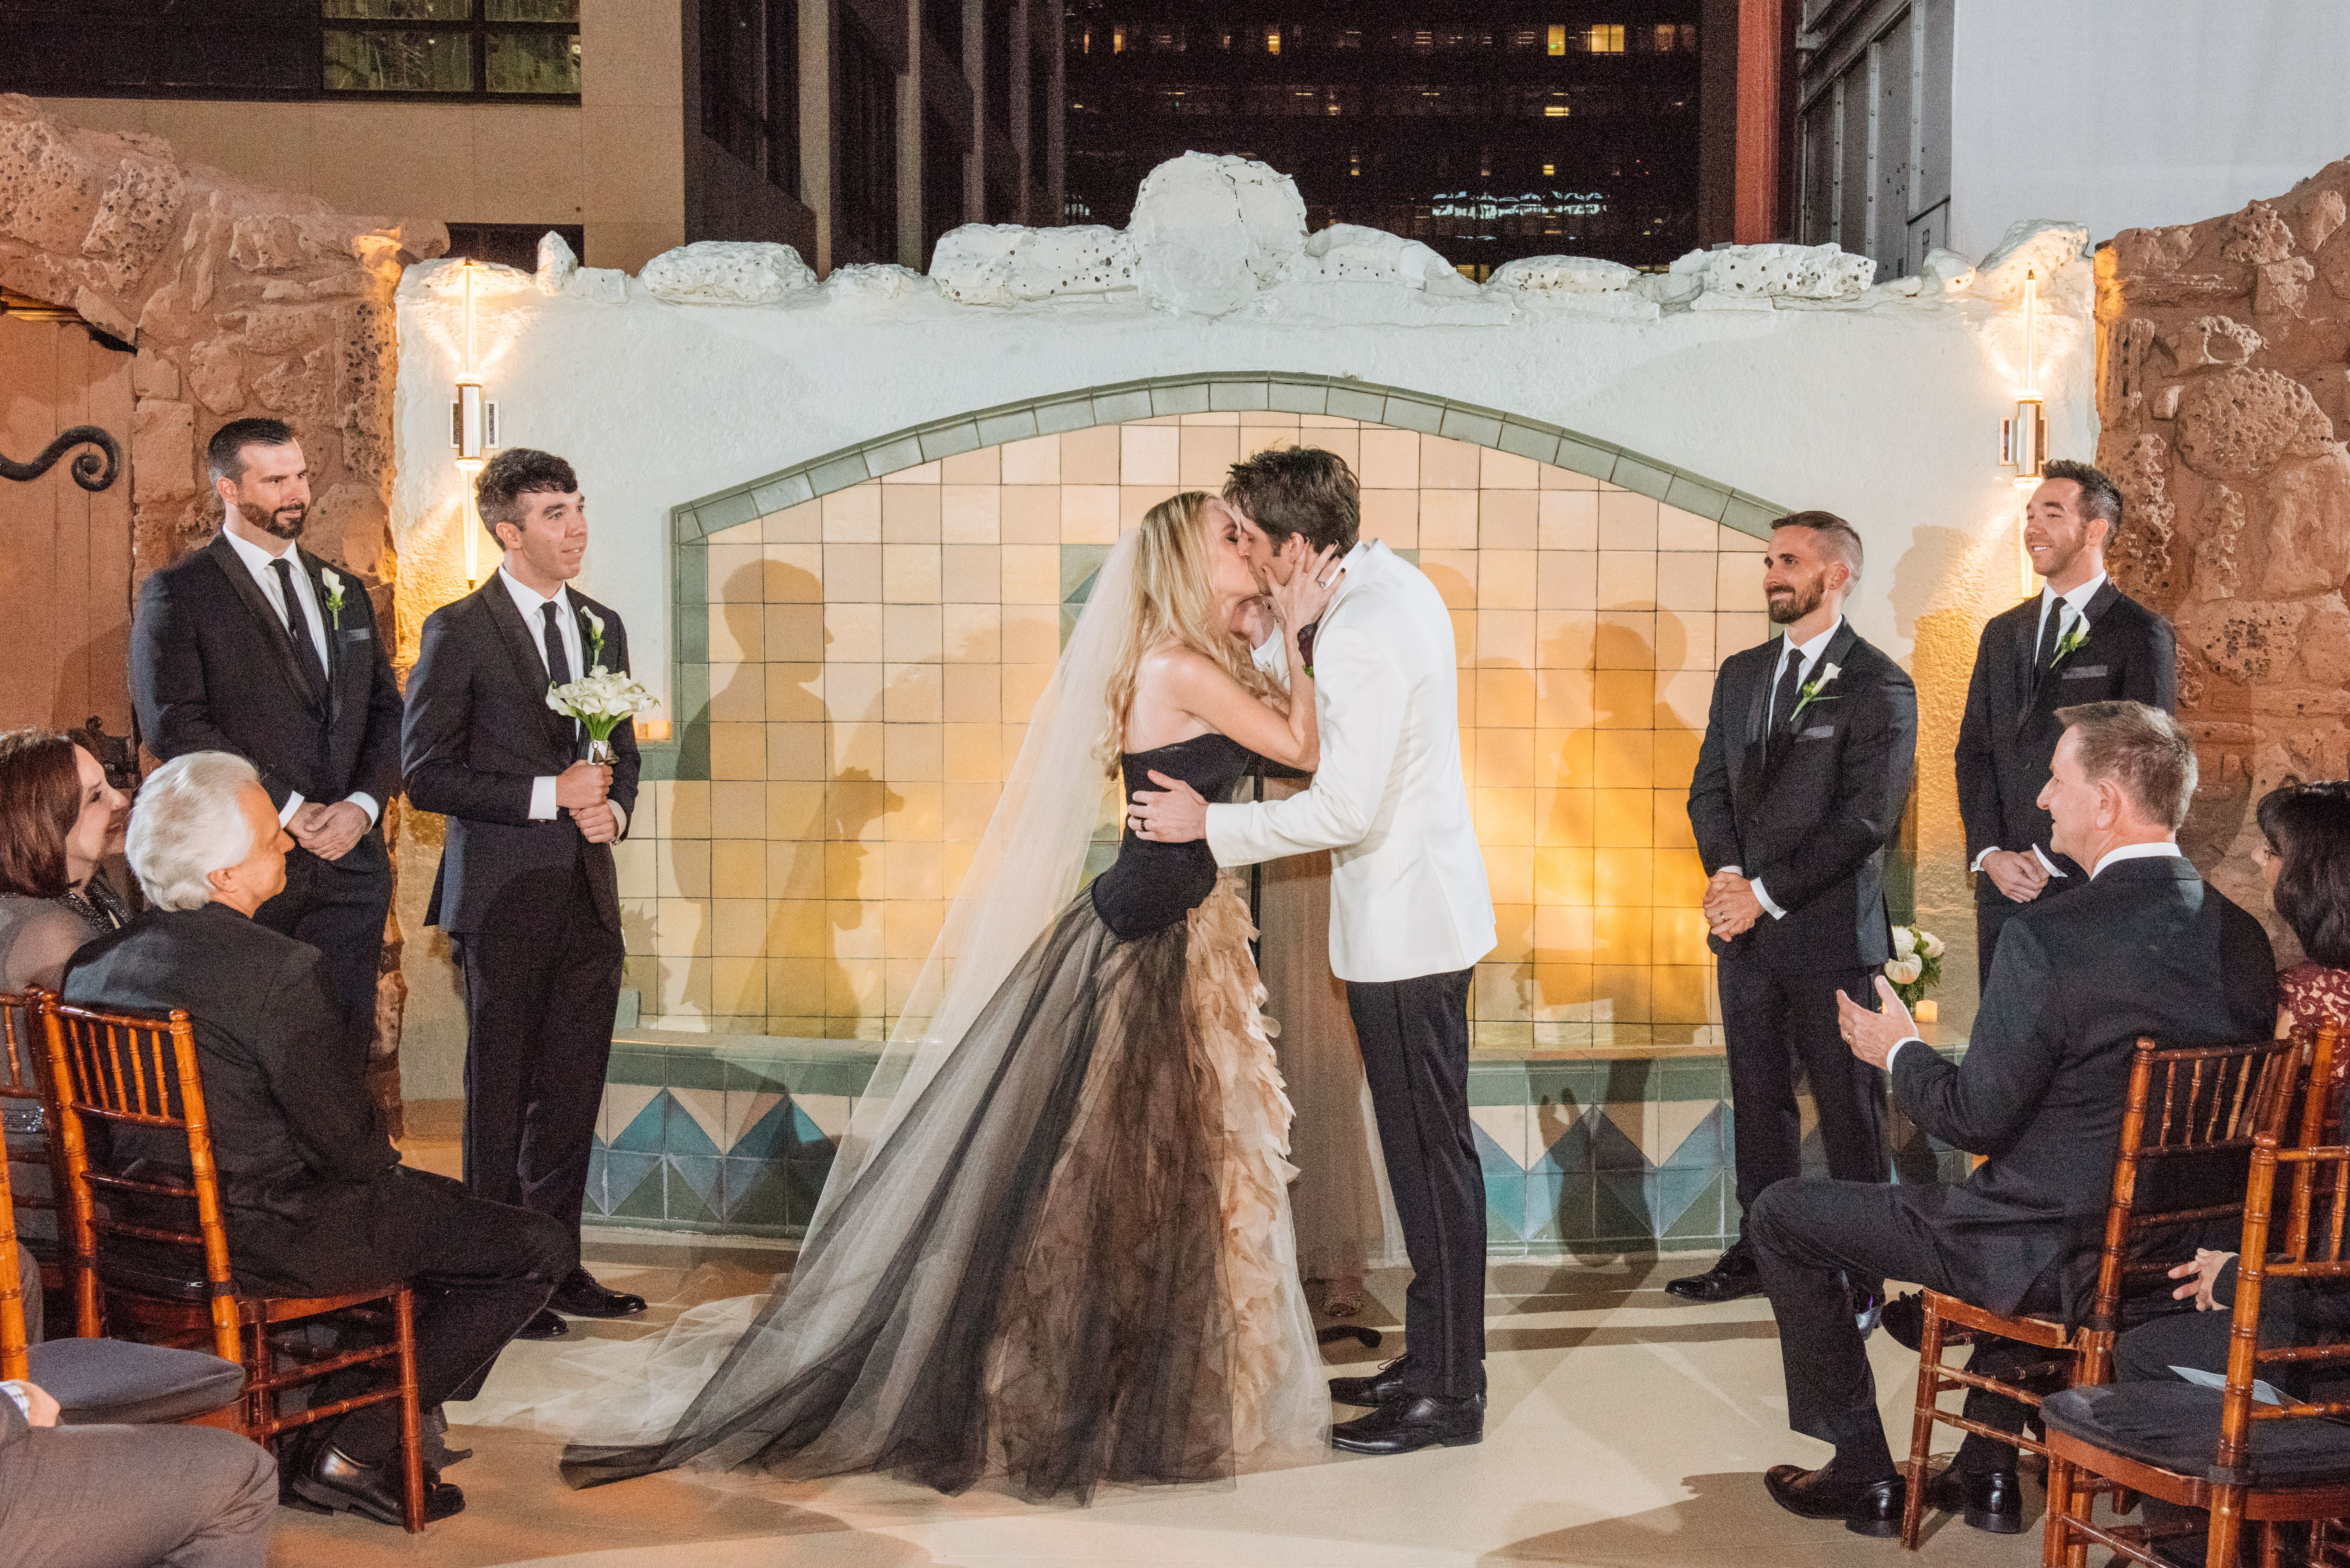 A Quirky Halloween Wedding At Oviatt Penthouse In Los